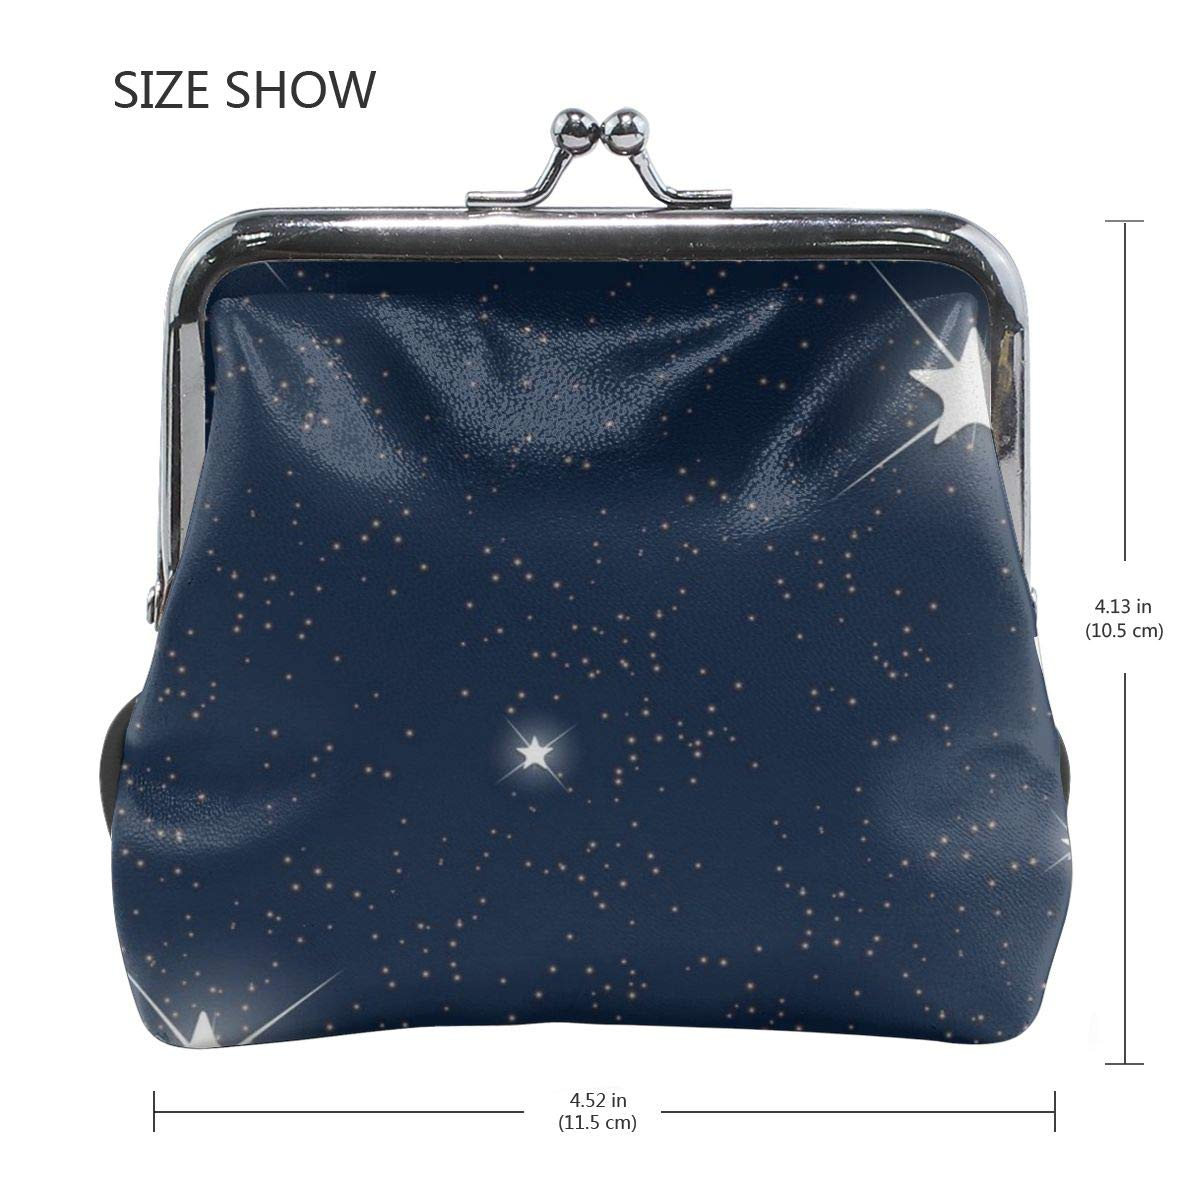 Poream Space Blue Starry Sky Customized Retro Leather Cute Classic Coin Purse Clutch Pouch Wallet For Womens